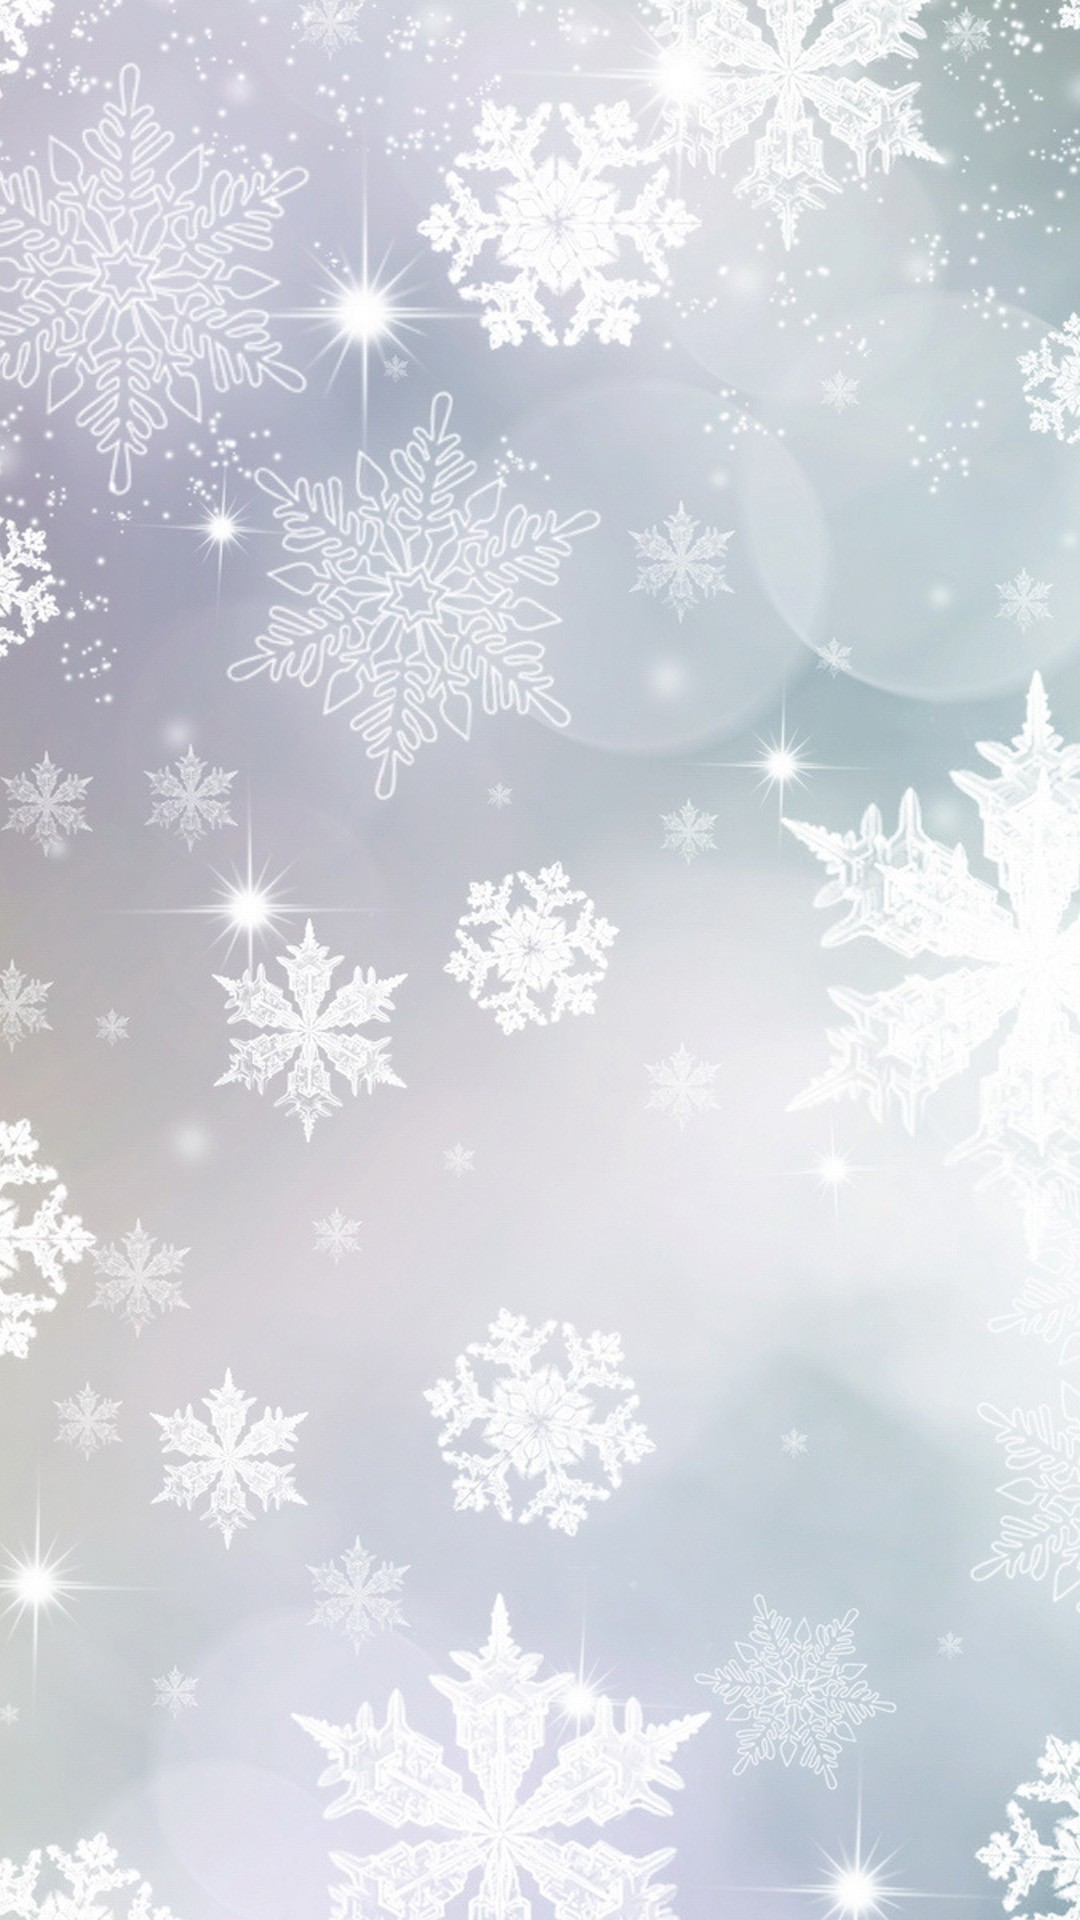 Xmas Wallpaper Iphone Christmas Wallpapers Backgrounds 62 Images